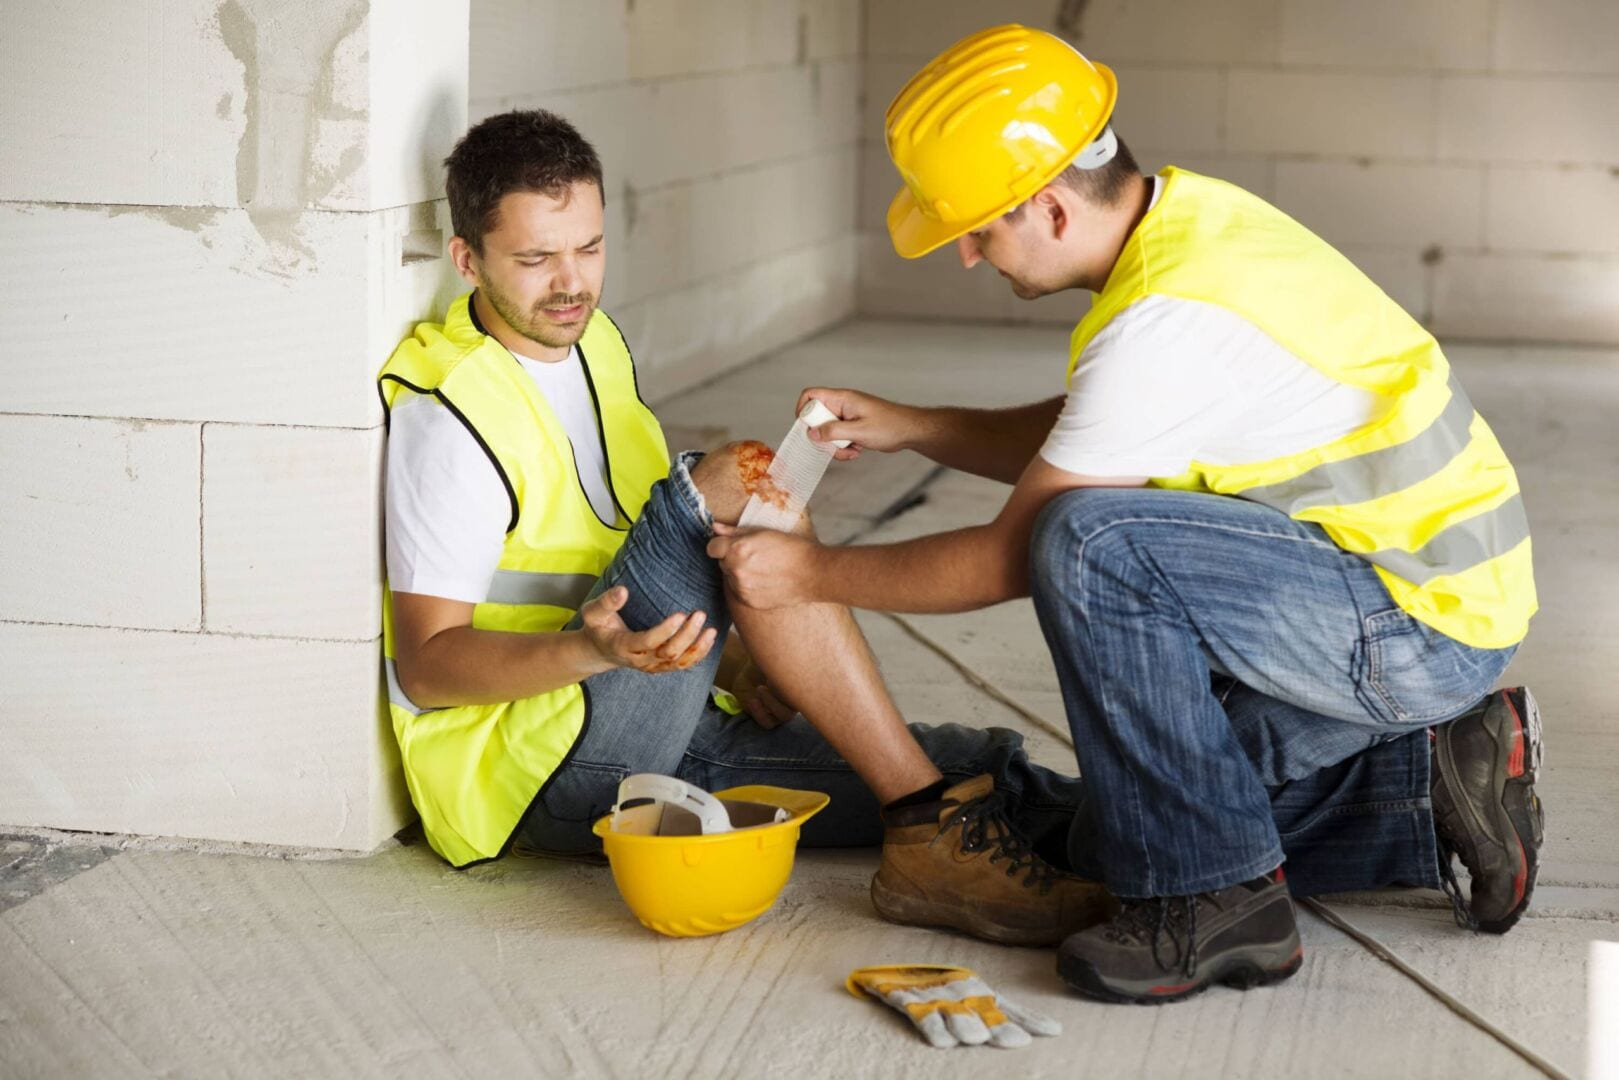 fort worth construction accident lawyer